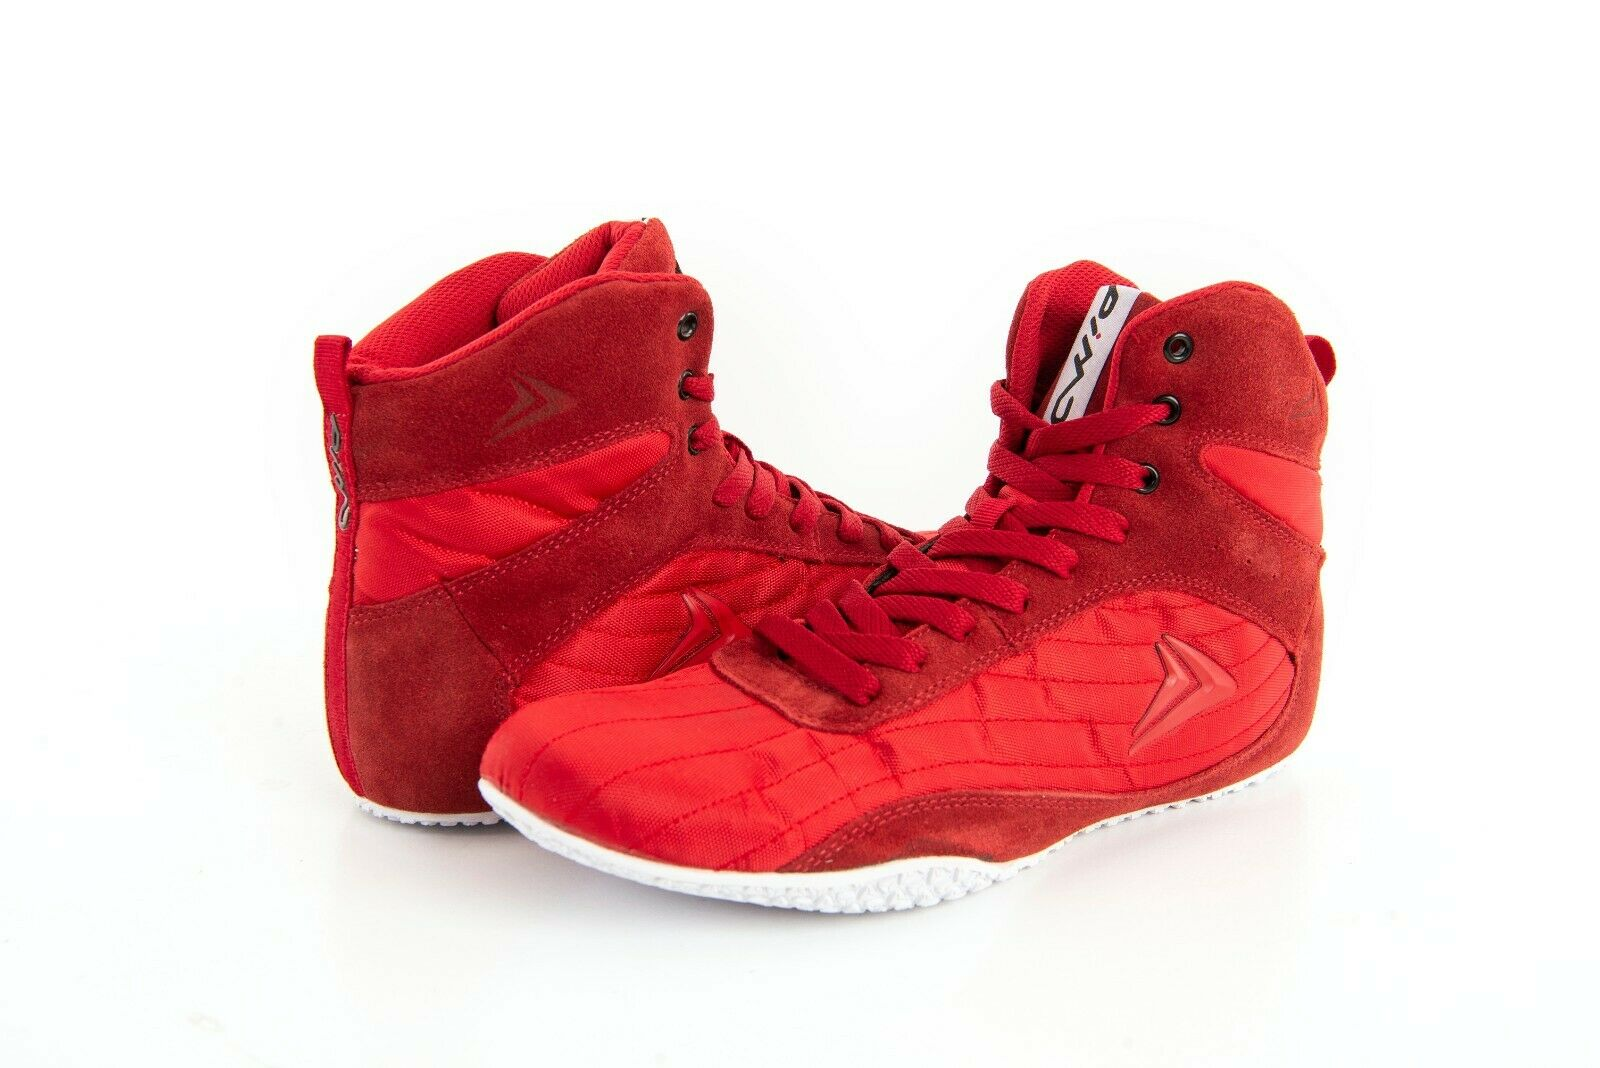 PIMD Red X-Core V2 SQUAT WALKING TRAINERS BOXING JOGGING GYM SHOES BOOTS